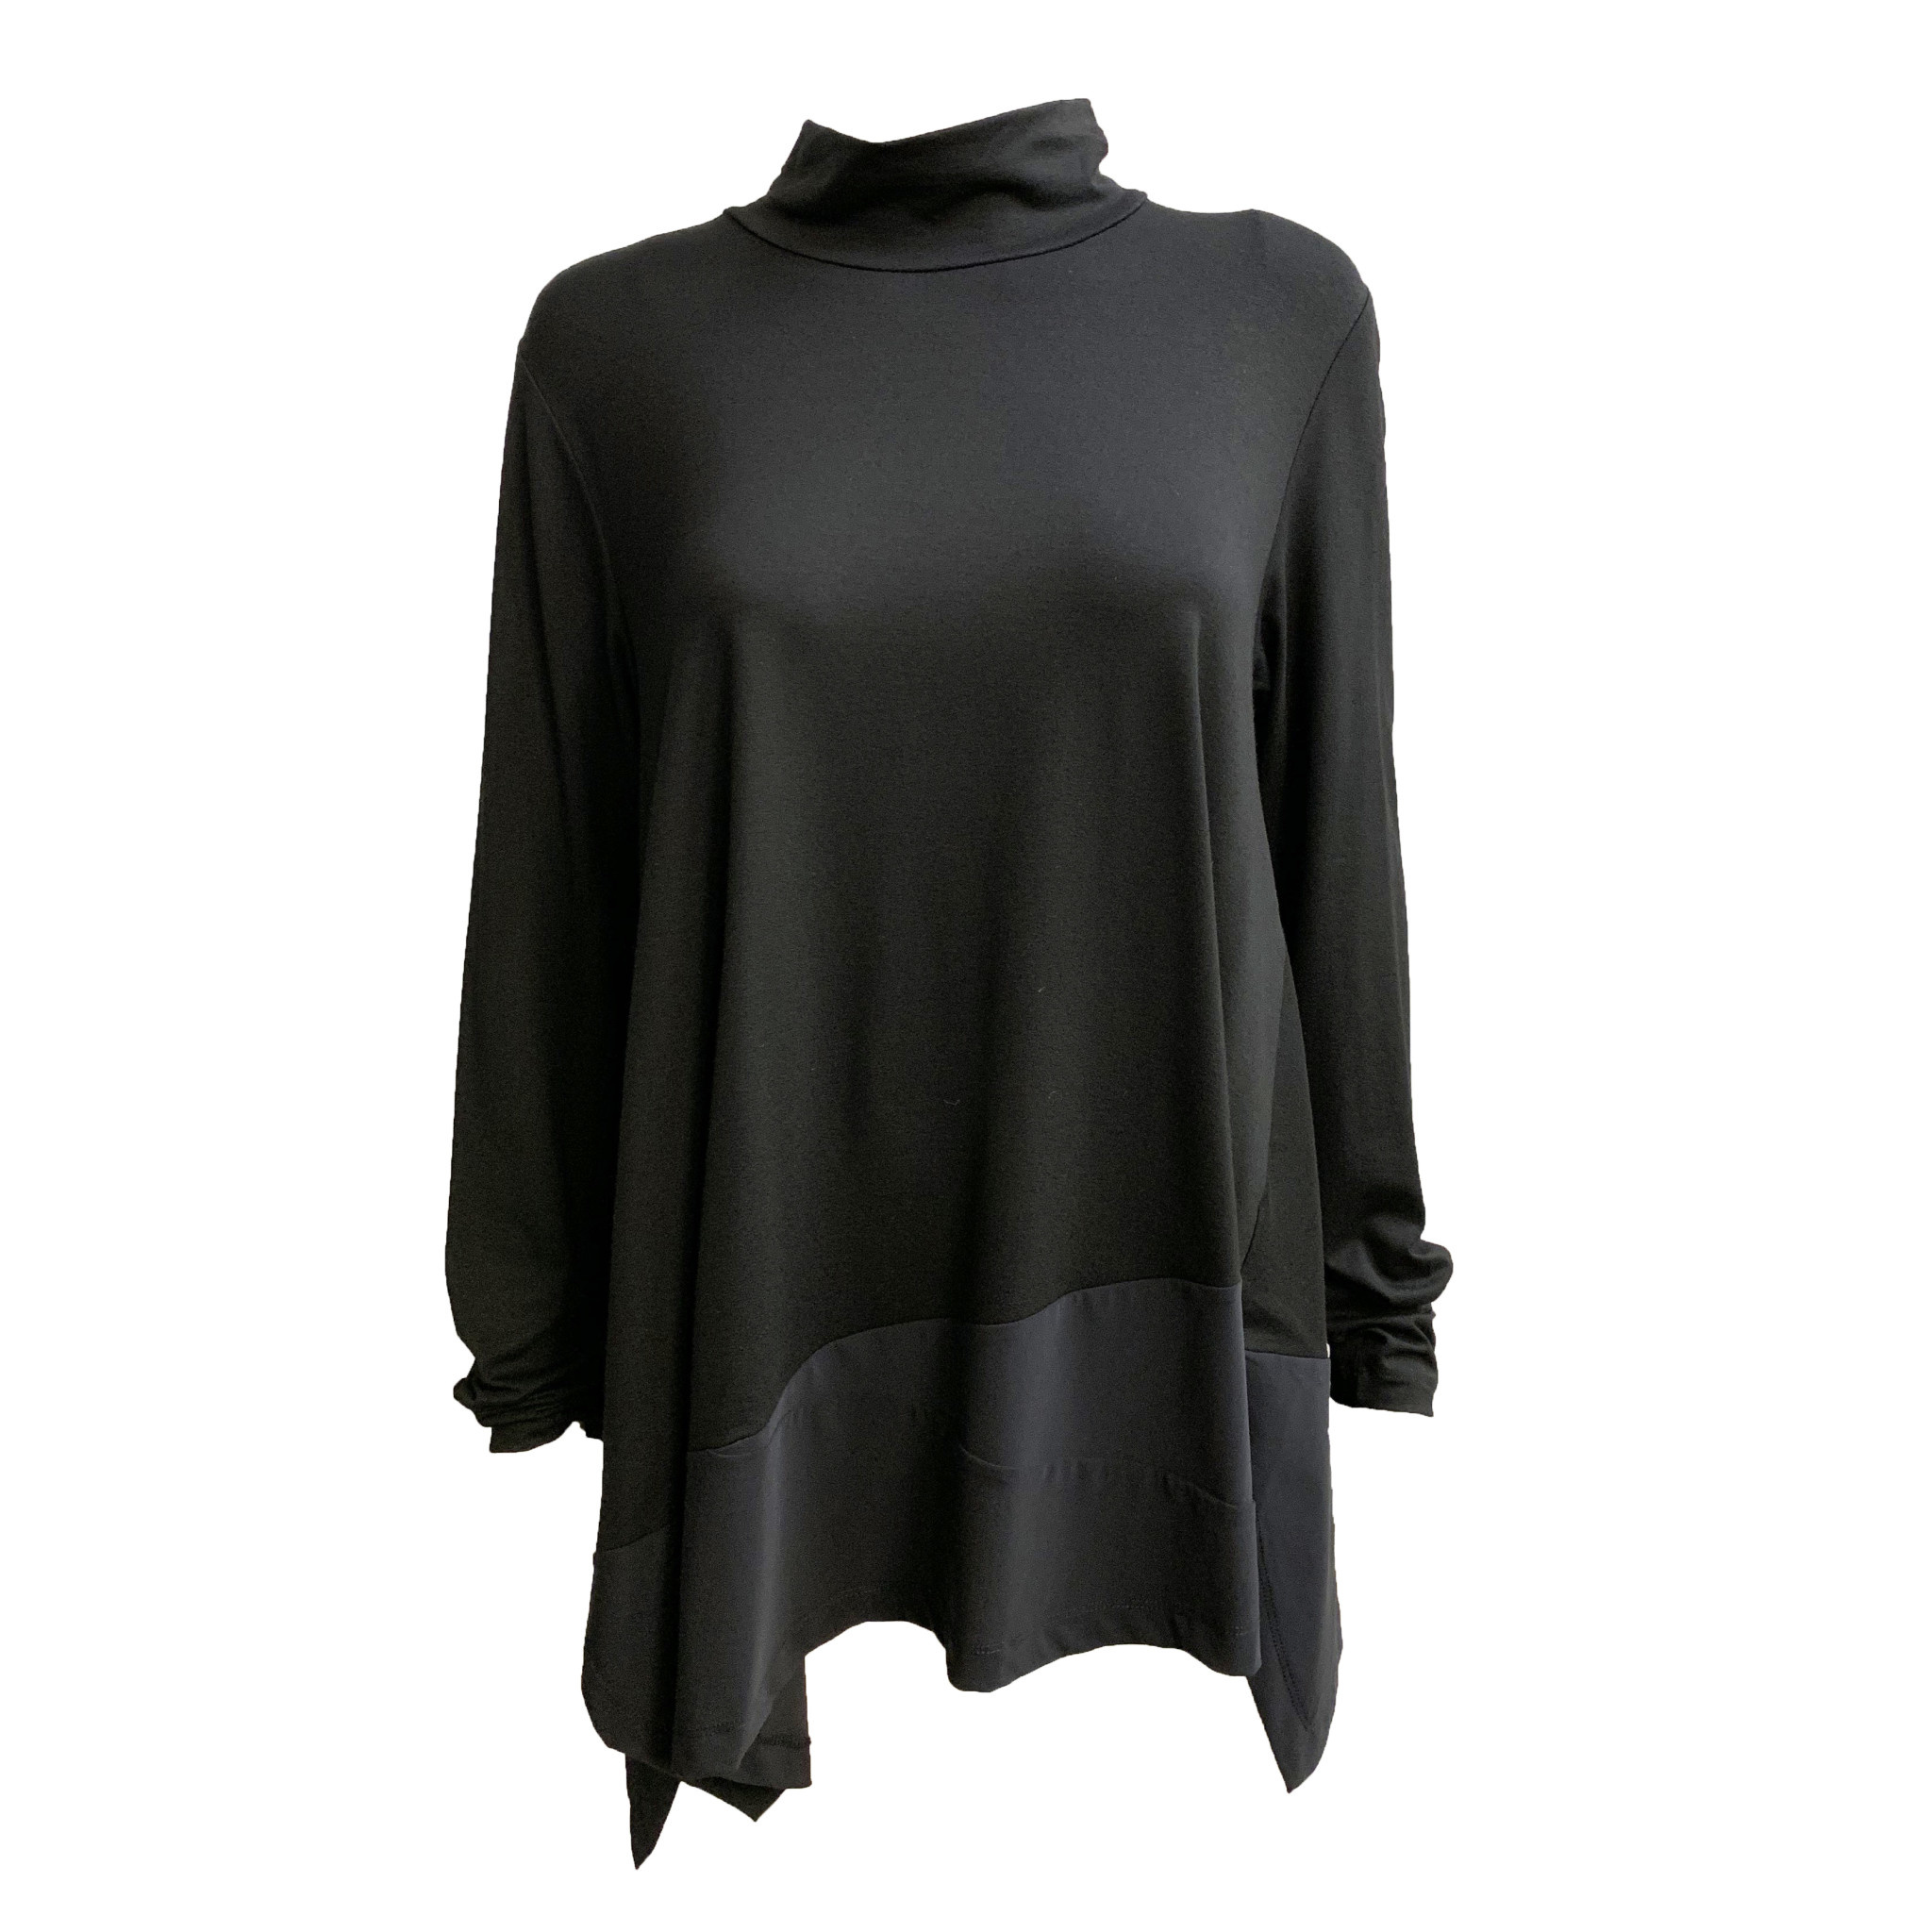 Alembika Alembika Long Sleeve Top - Black